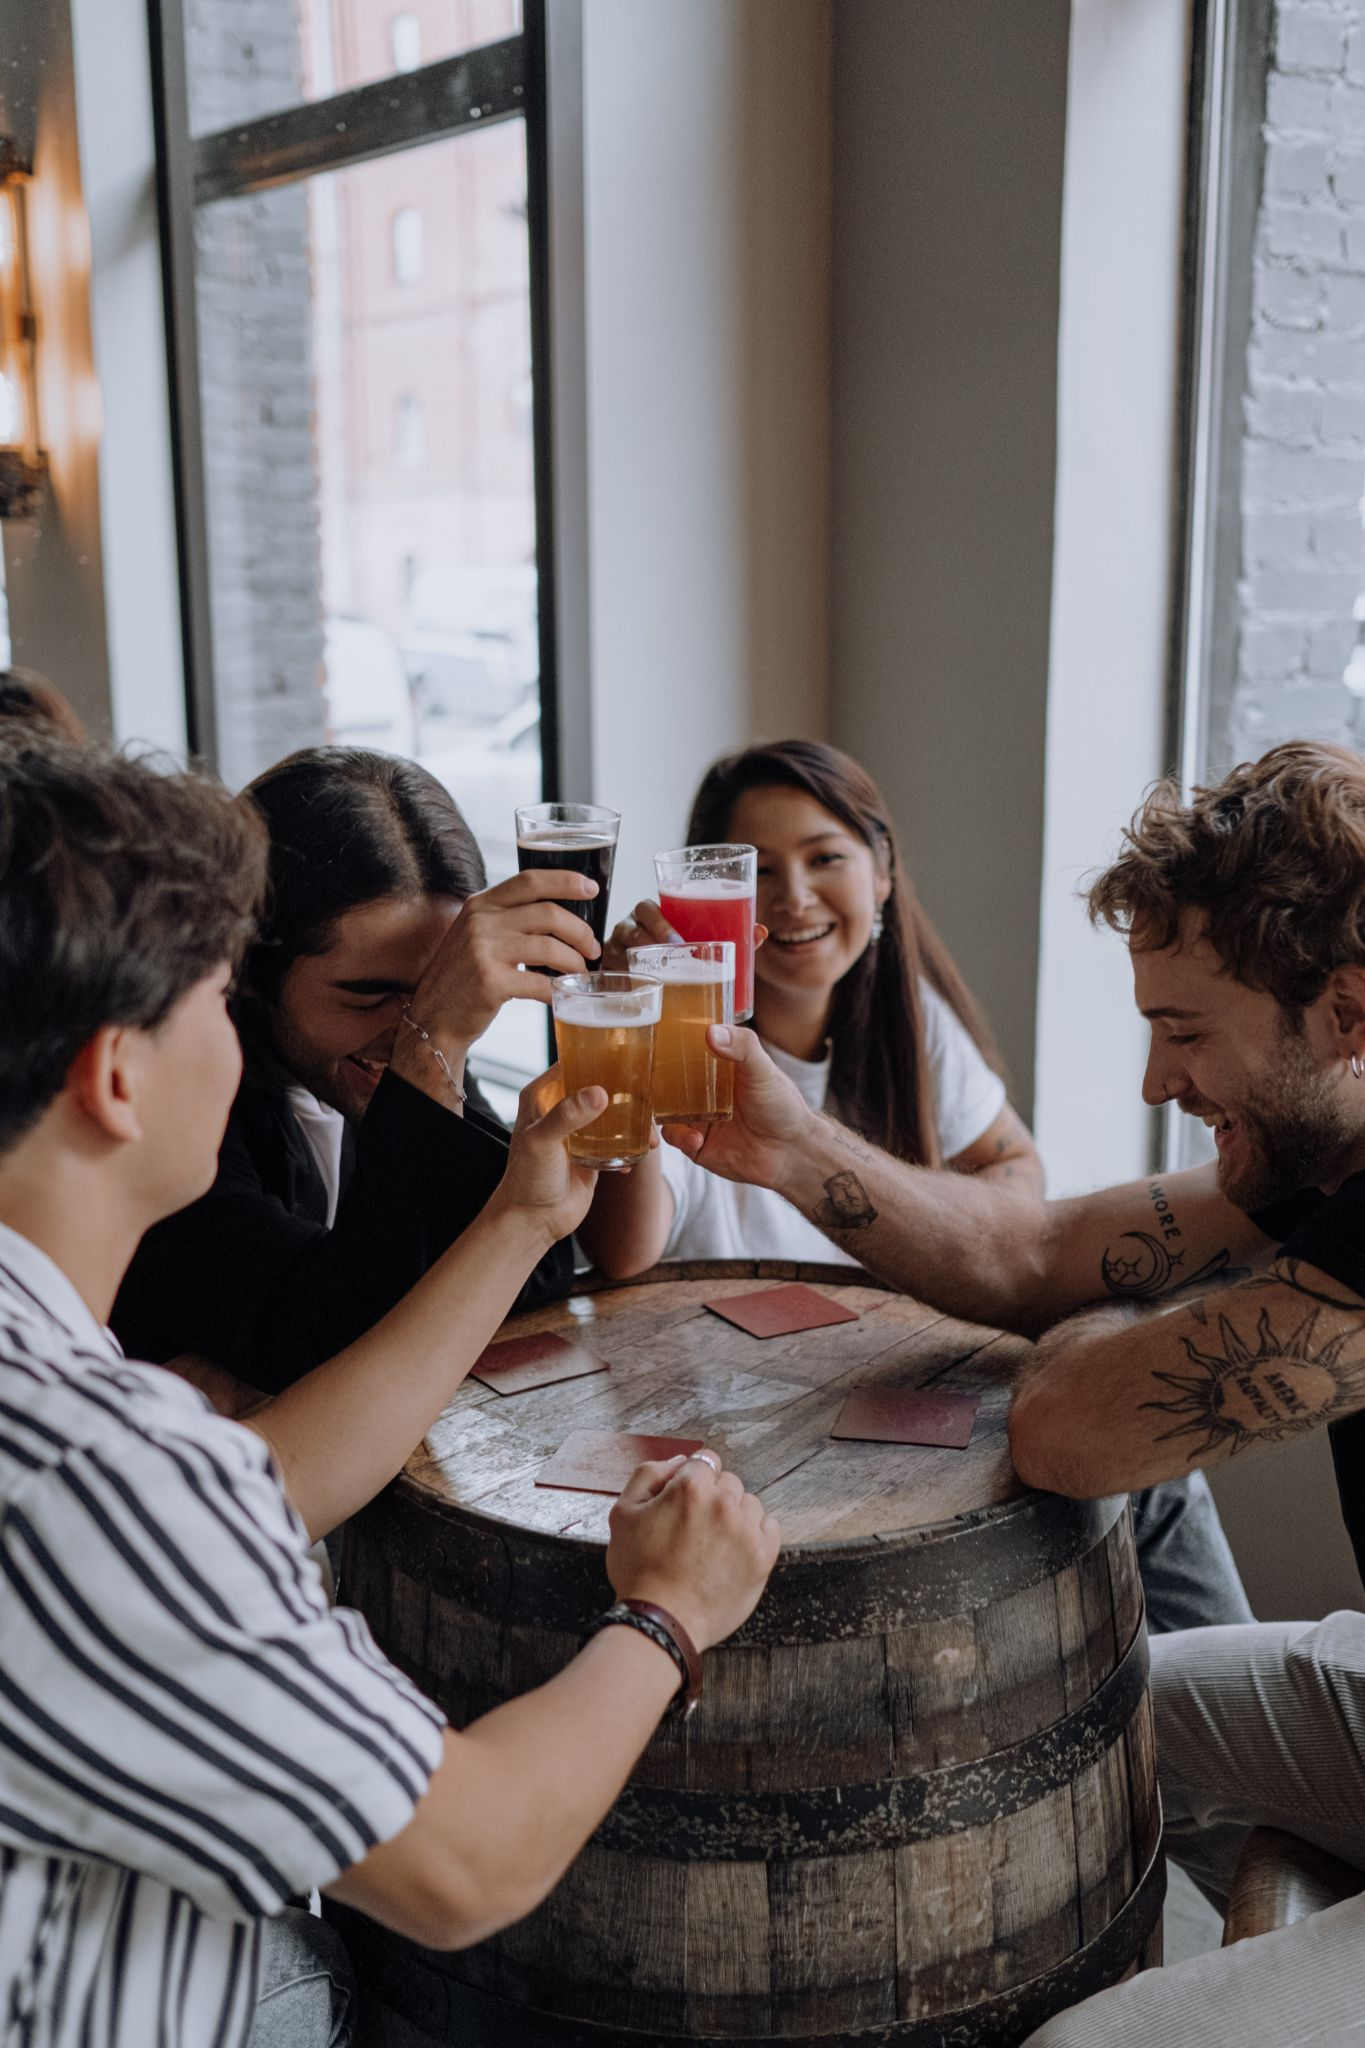 The 5 Best Brewery and Bar Event Strategies of 2021